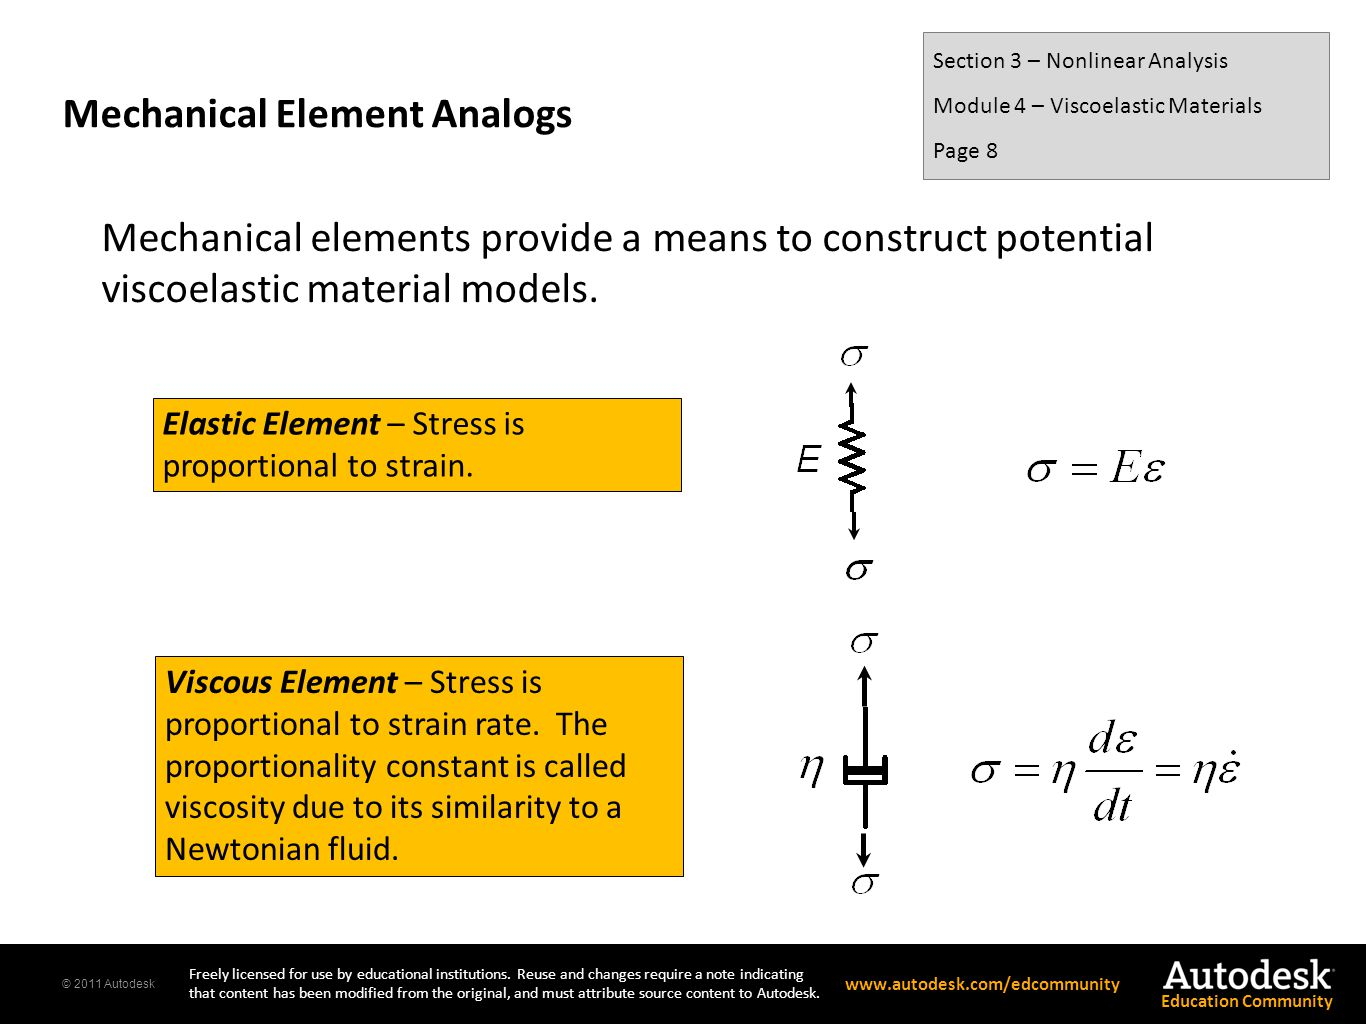 Mechanical Element Analogs